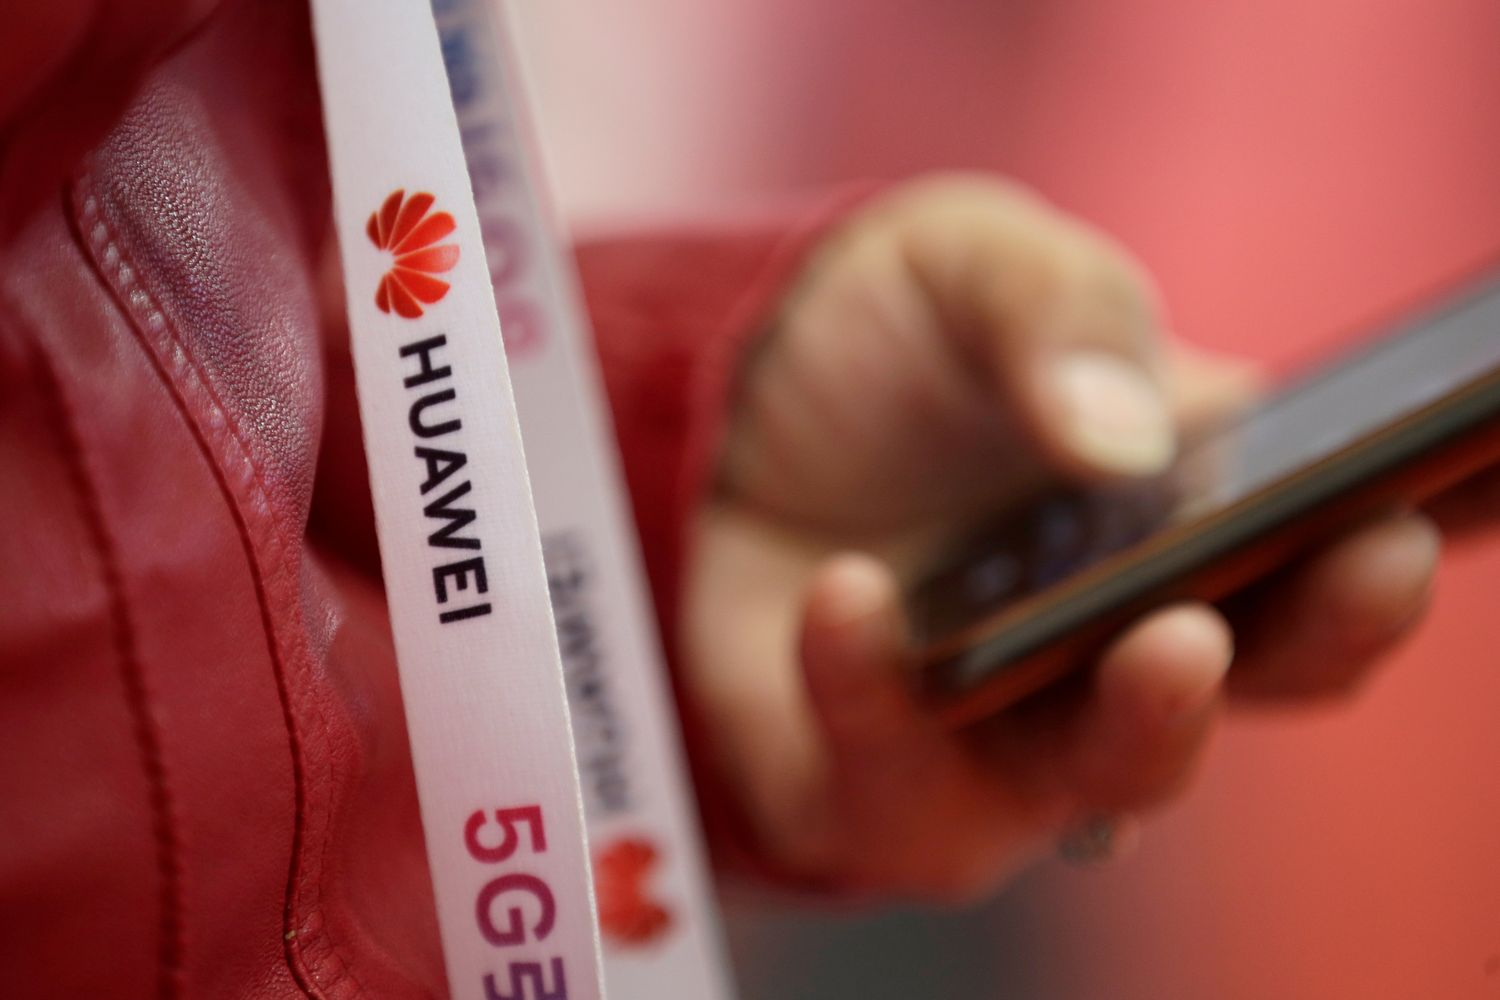 An attendee wears a badge strip with the logo of Huawei and a sign for 5G at the World 5G Exhibition in Beijing on Nov 22 last year. (Reuters photo)